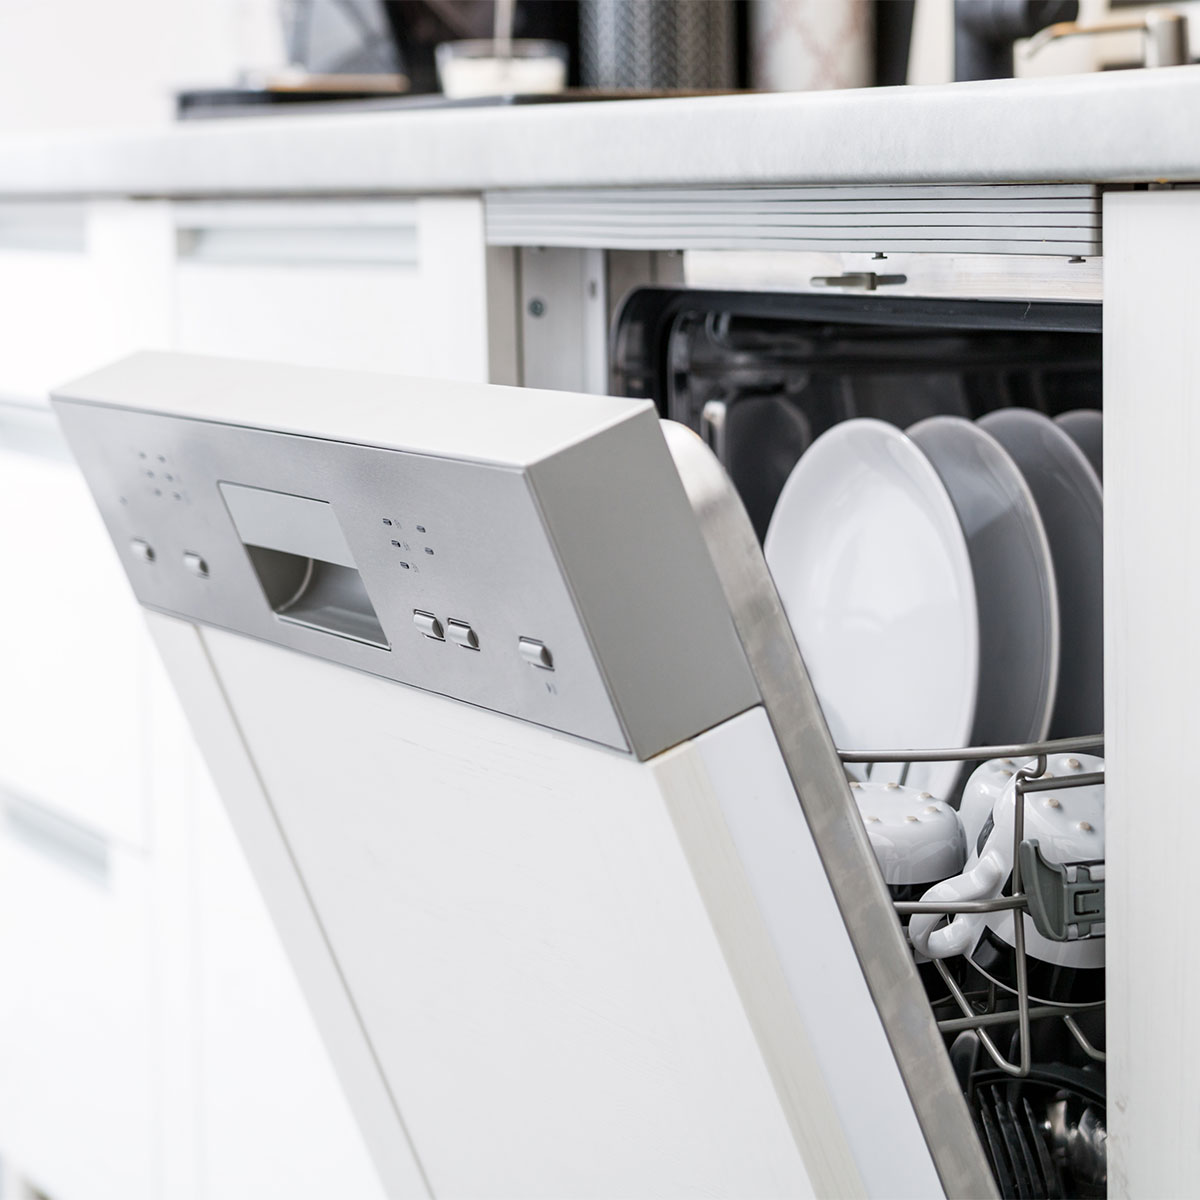 Dishwasher repair in Chicago, IL